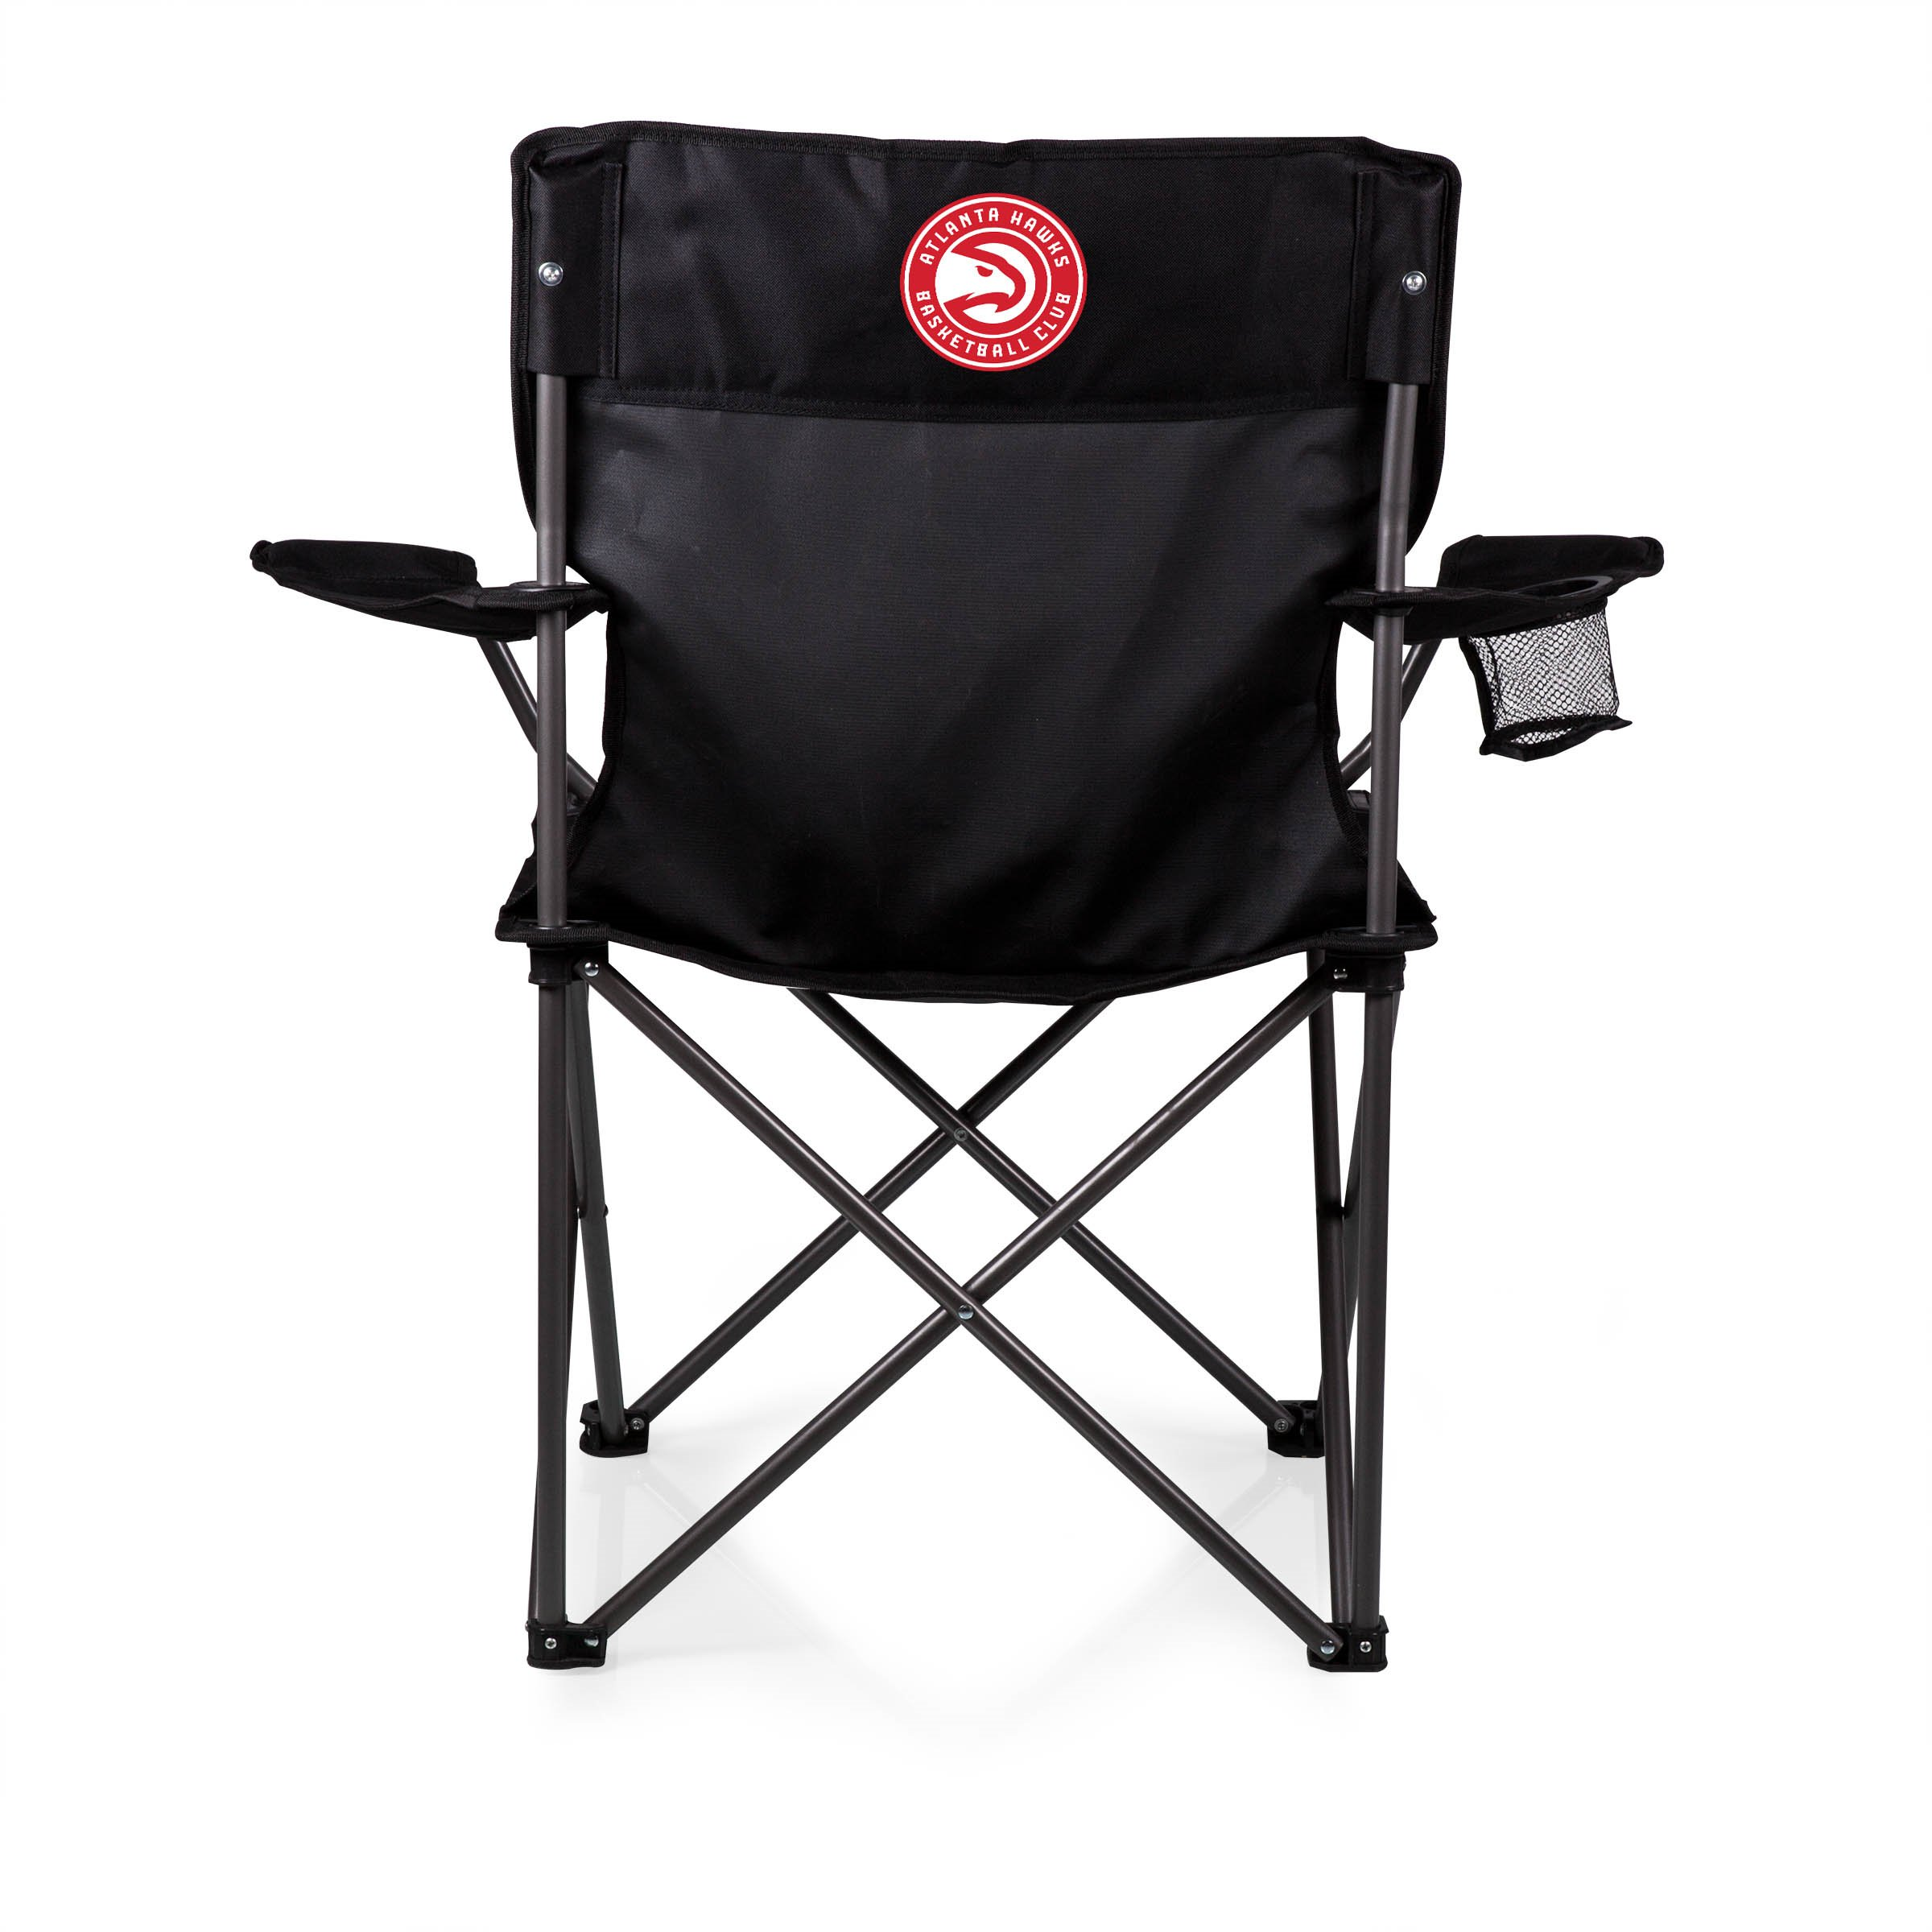 Picnic Time Nba Ptz Chair Atlanta Hawks